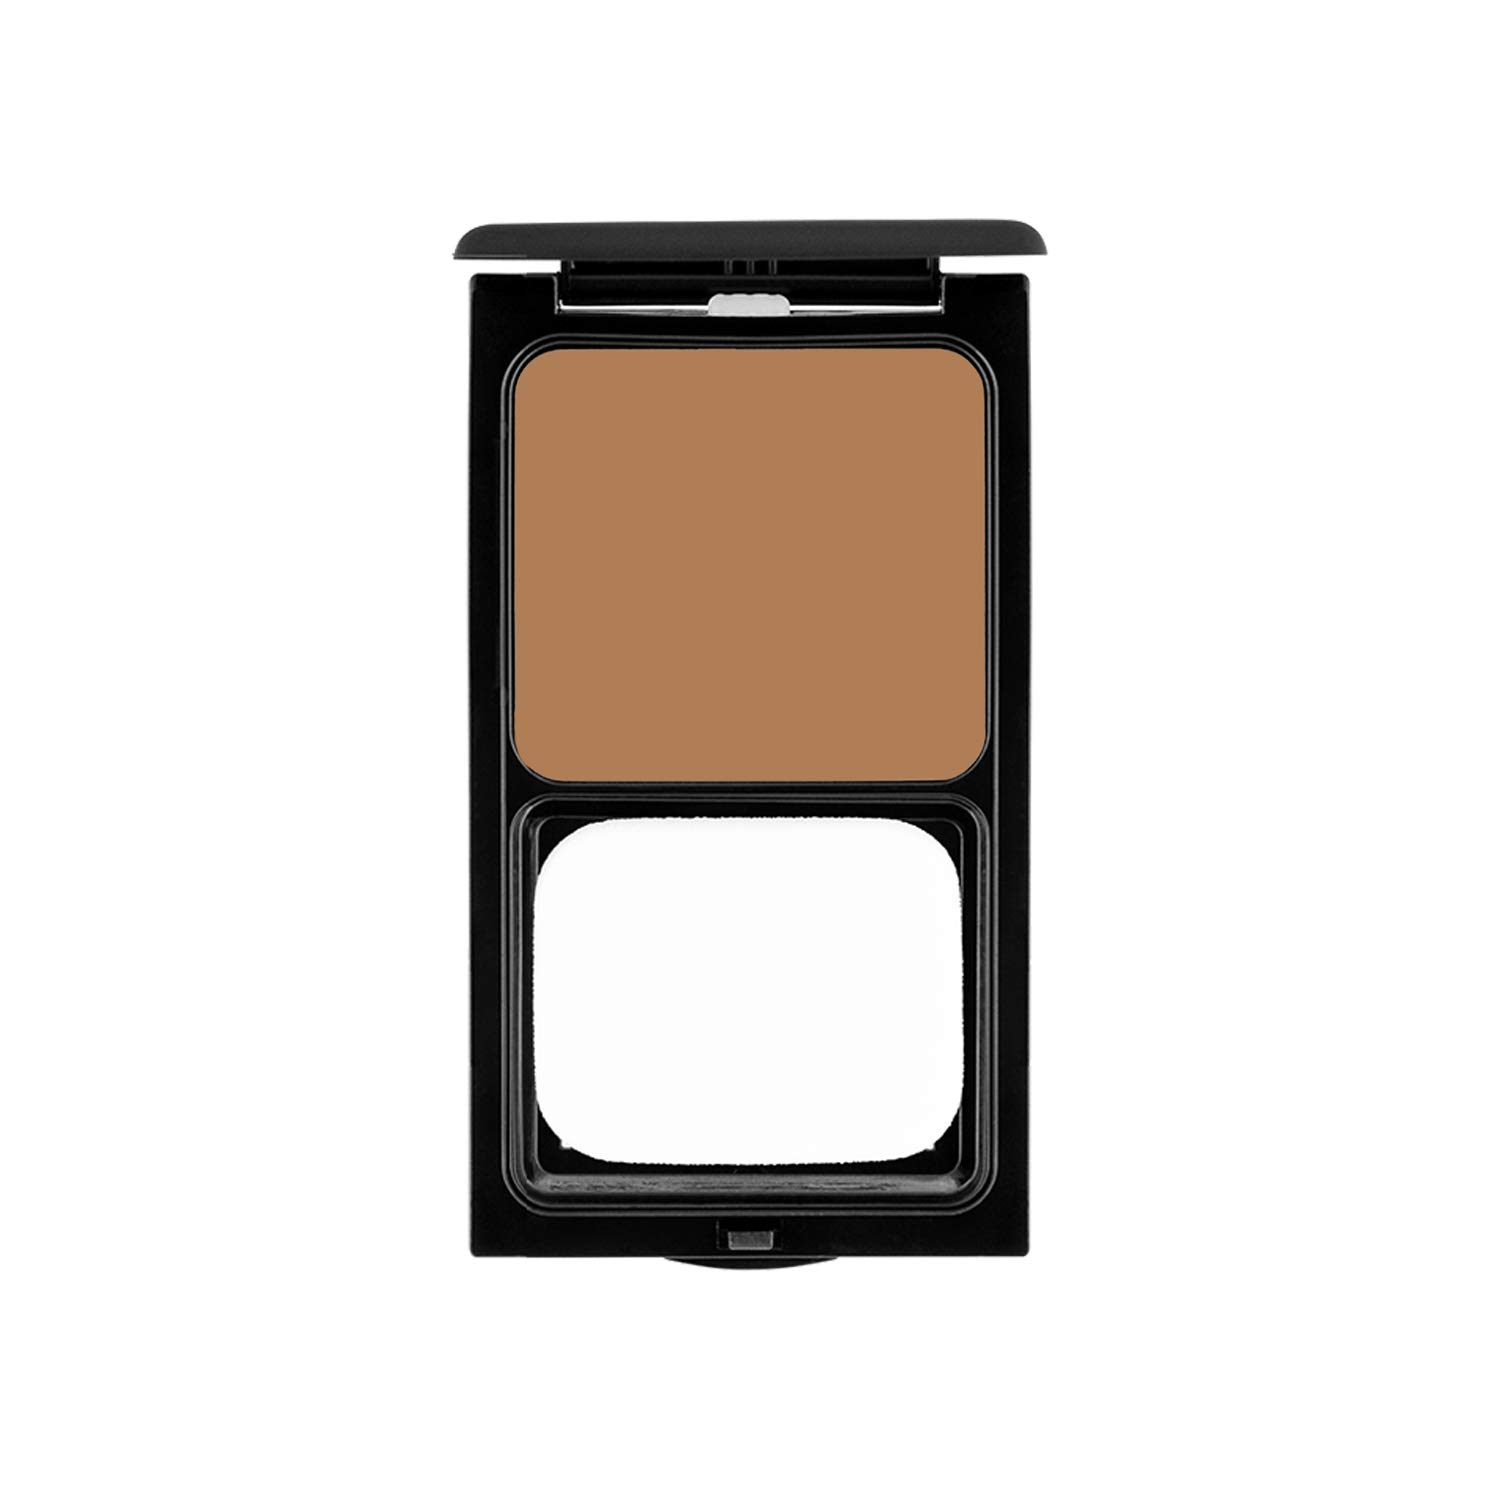 Cream Foundation Compact by Sacha Cosmetics, Best Natural Matte Makeup to give Flawless Looking Skin, Full Coverage, Normal to Dry Skin, 0.45 oz, Cocoa Beige